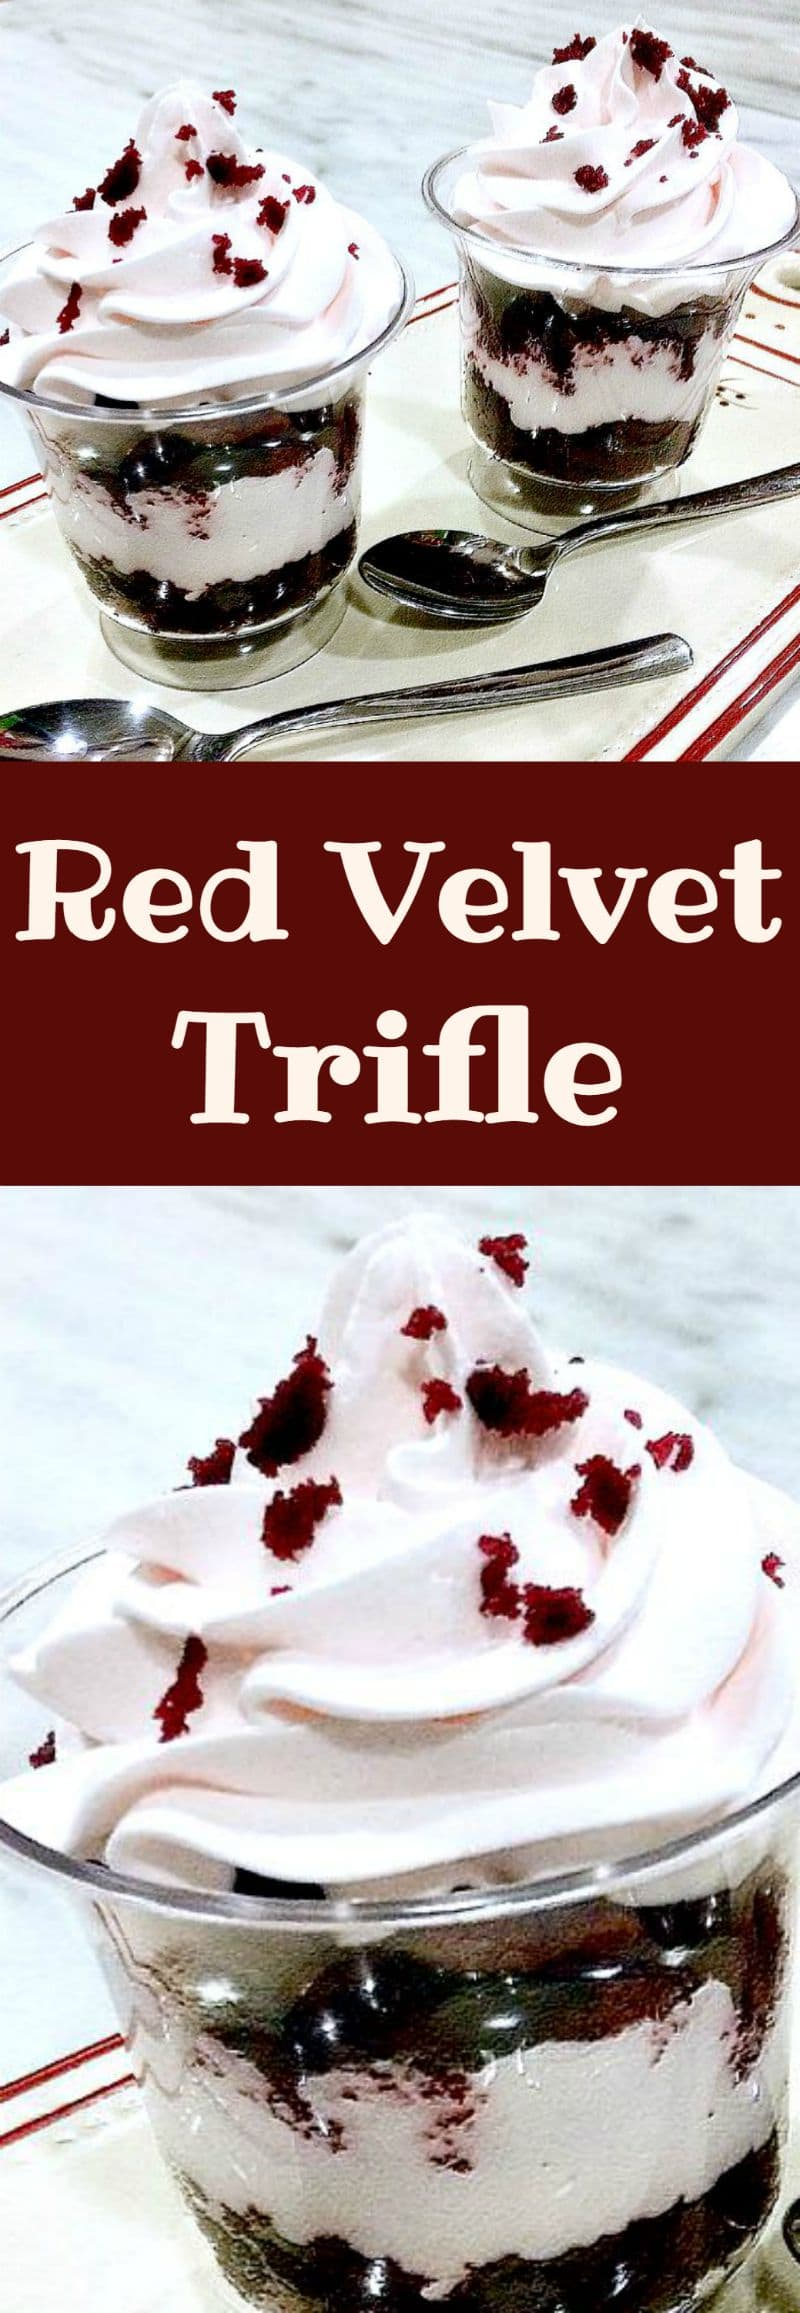 Red Velvet Trifle This is a delicious easy recipe. Serve in glasses or a large trifle bowl. Always a popular dessert!